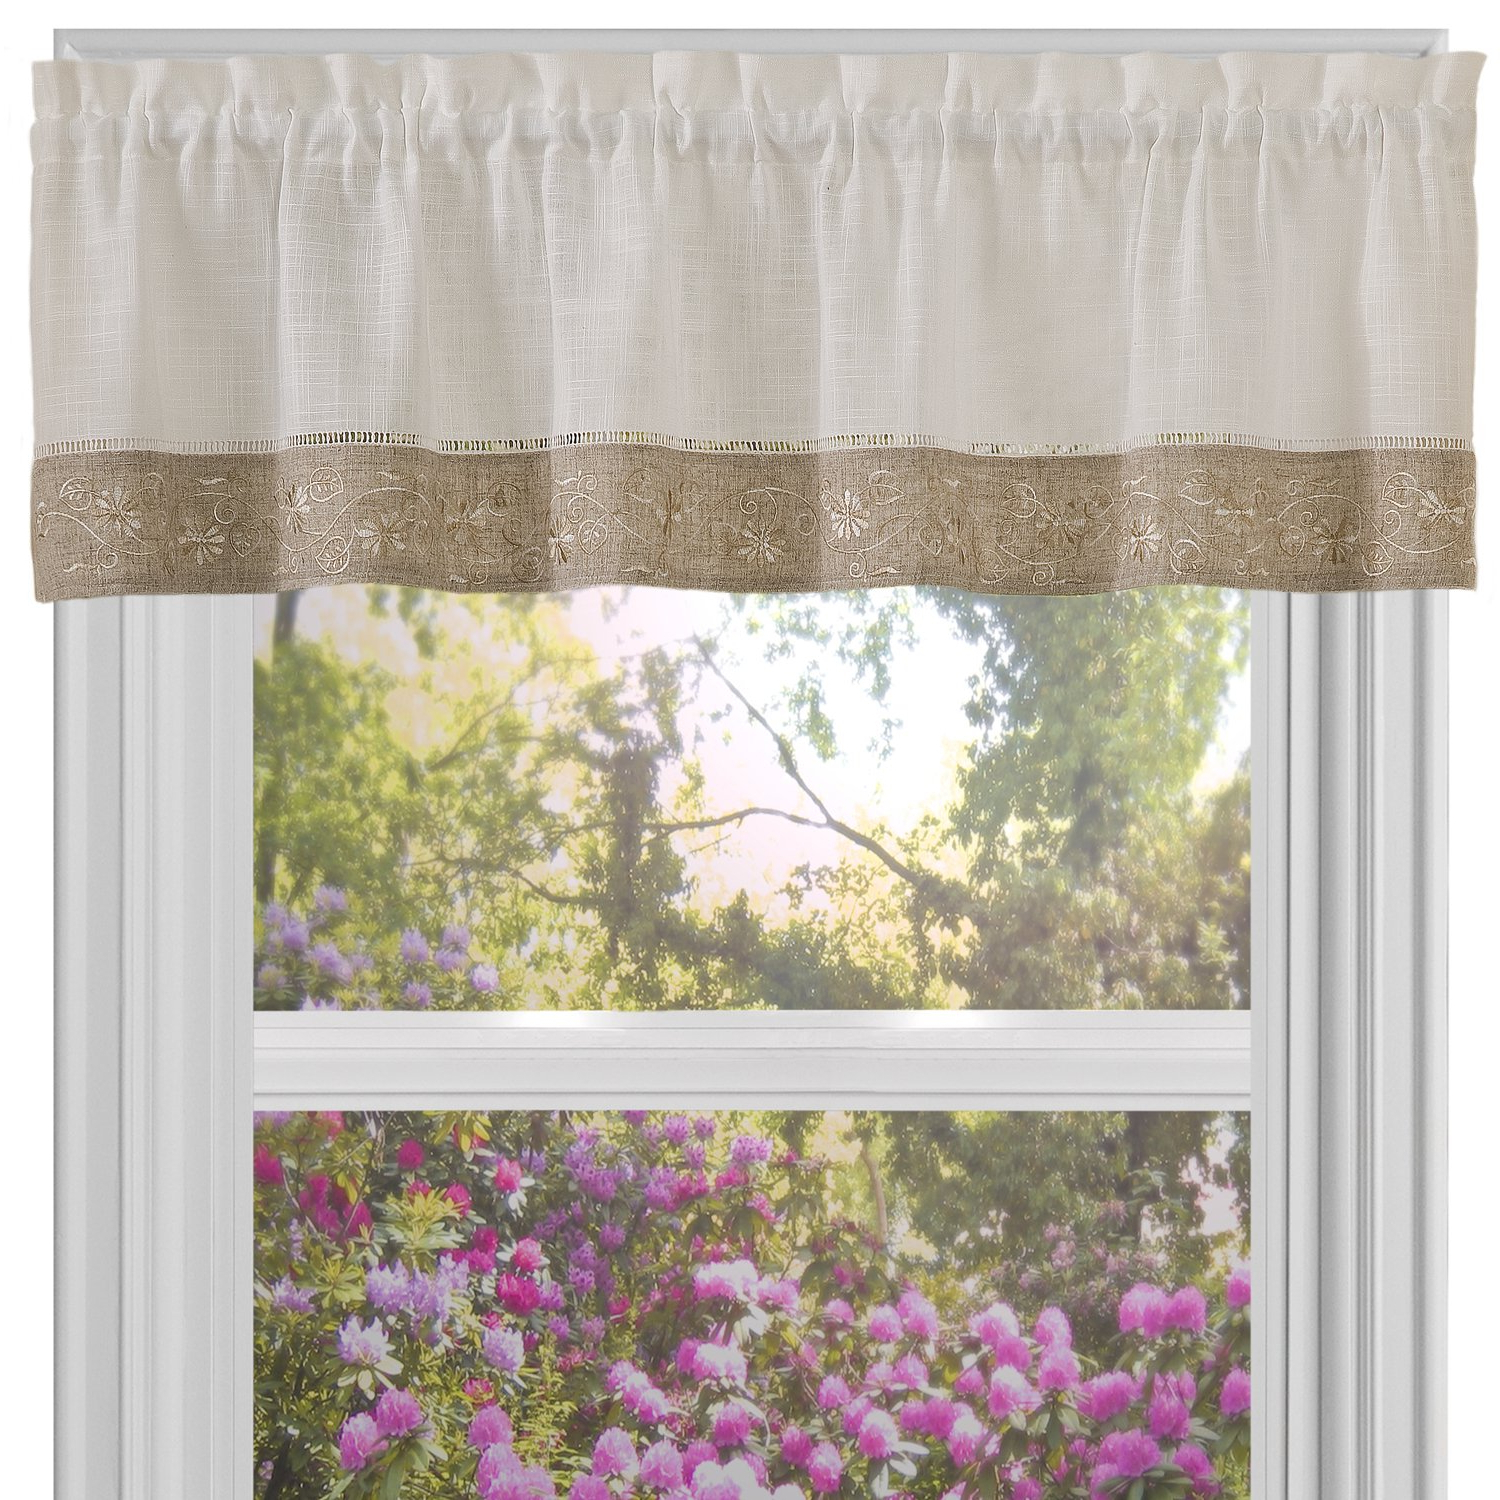 Widely Used Oakwood Linen Style Decorative Window Curtain Tier Sets In Amazon: Sweet Home Collection Oakwood Linen Design (View 19 of 20)